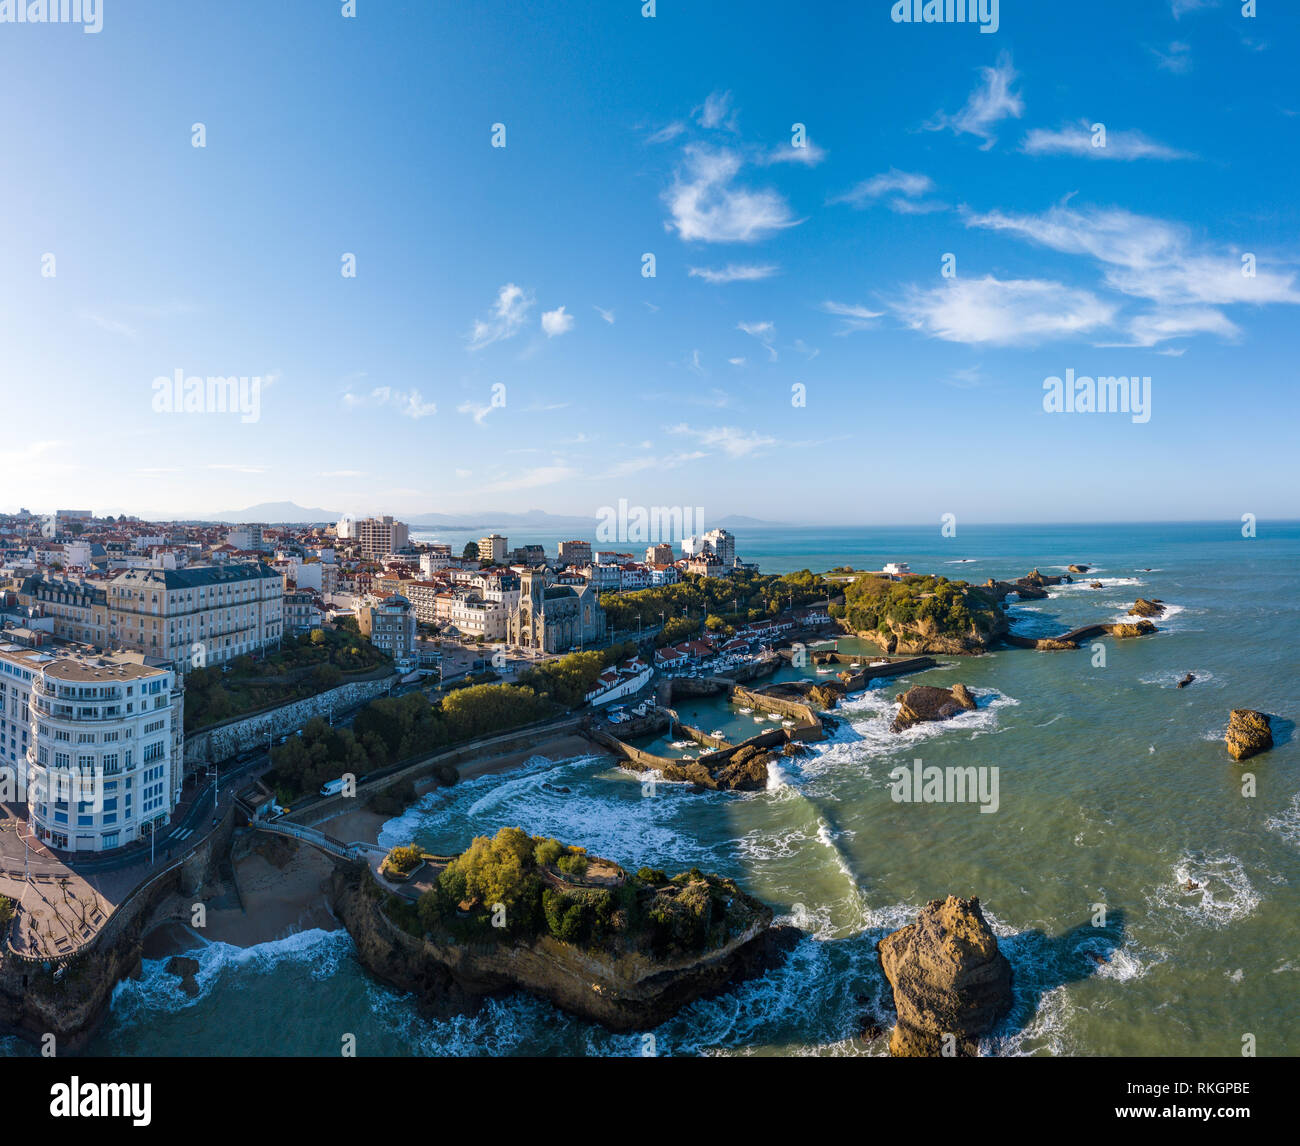 Biarritz city and its famous sand beaches, Miramar and La Grande Plage, Bay of Biscay, Atlantic coast, Pays Basque, France Stock Photo